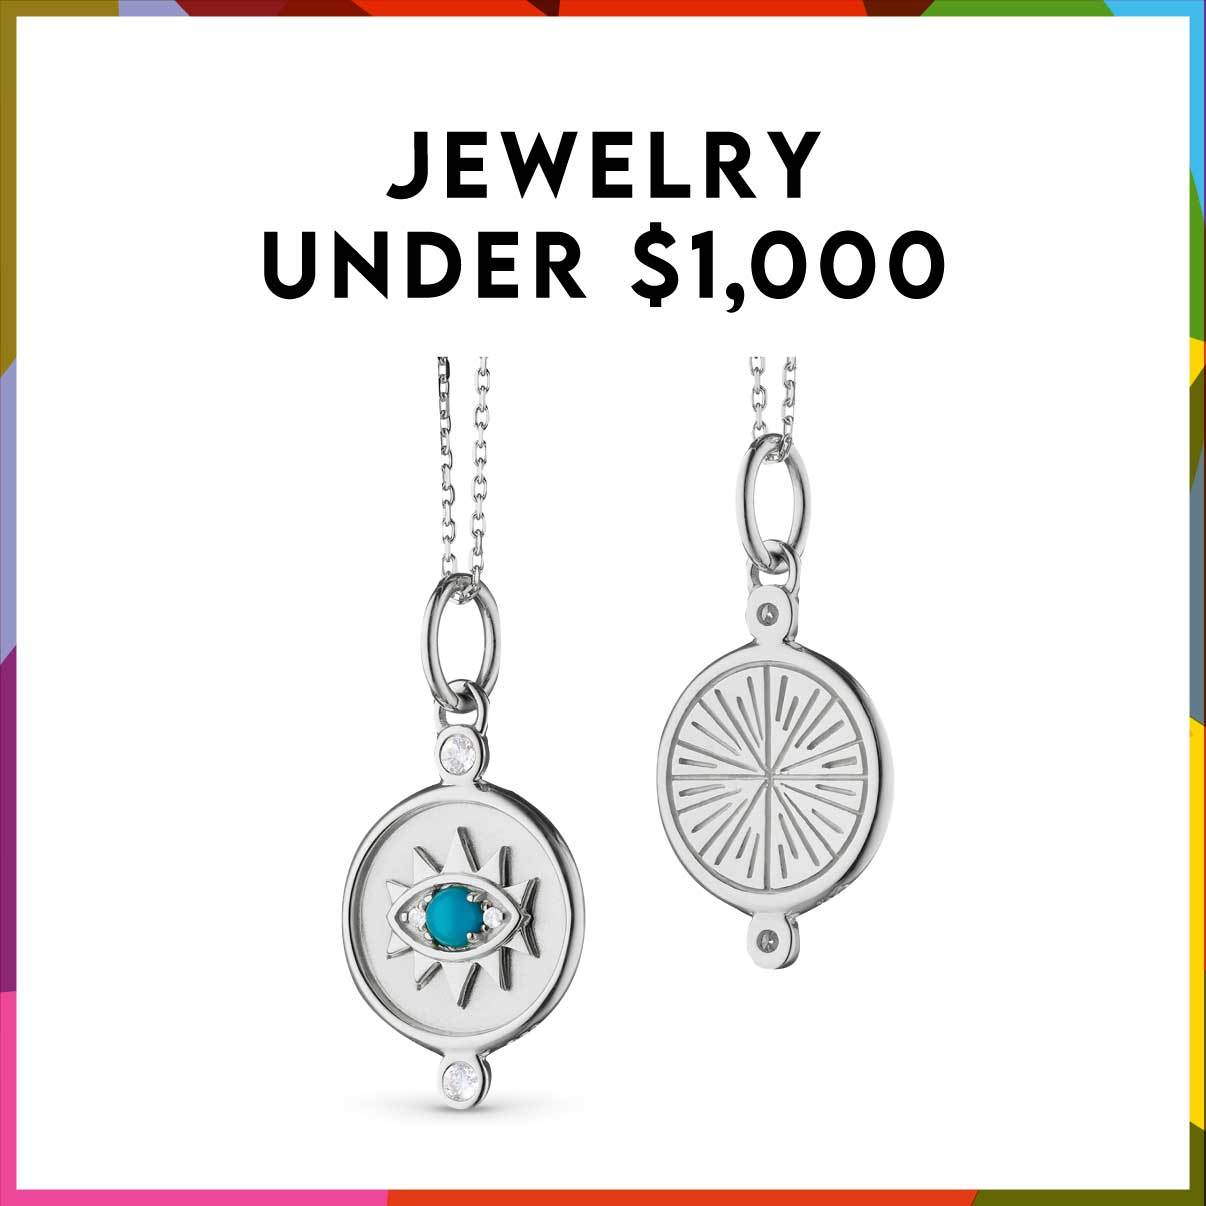 Jewelry Gifts Under $1,000